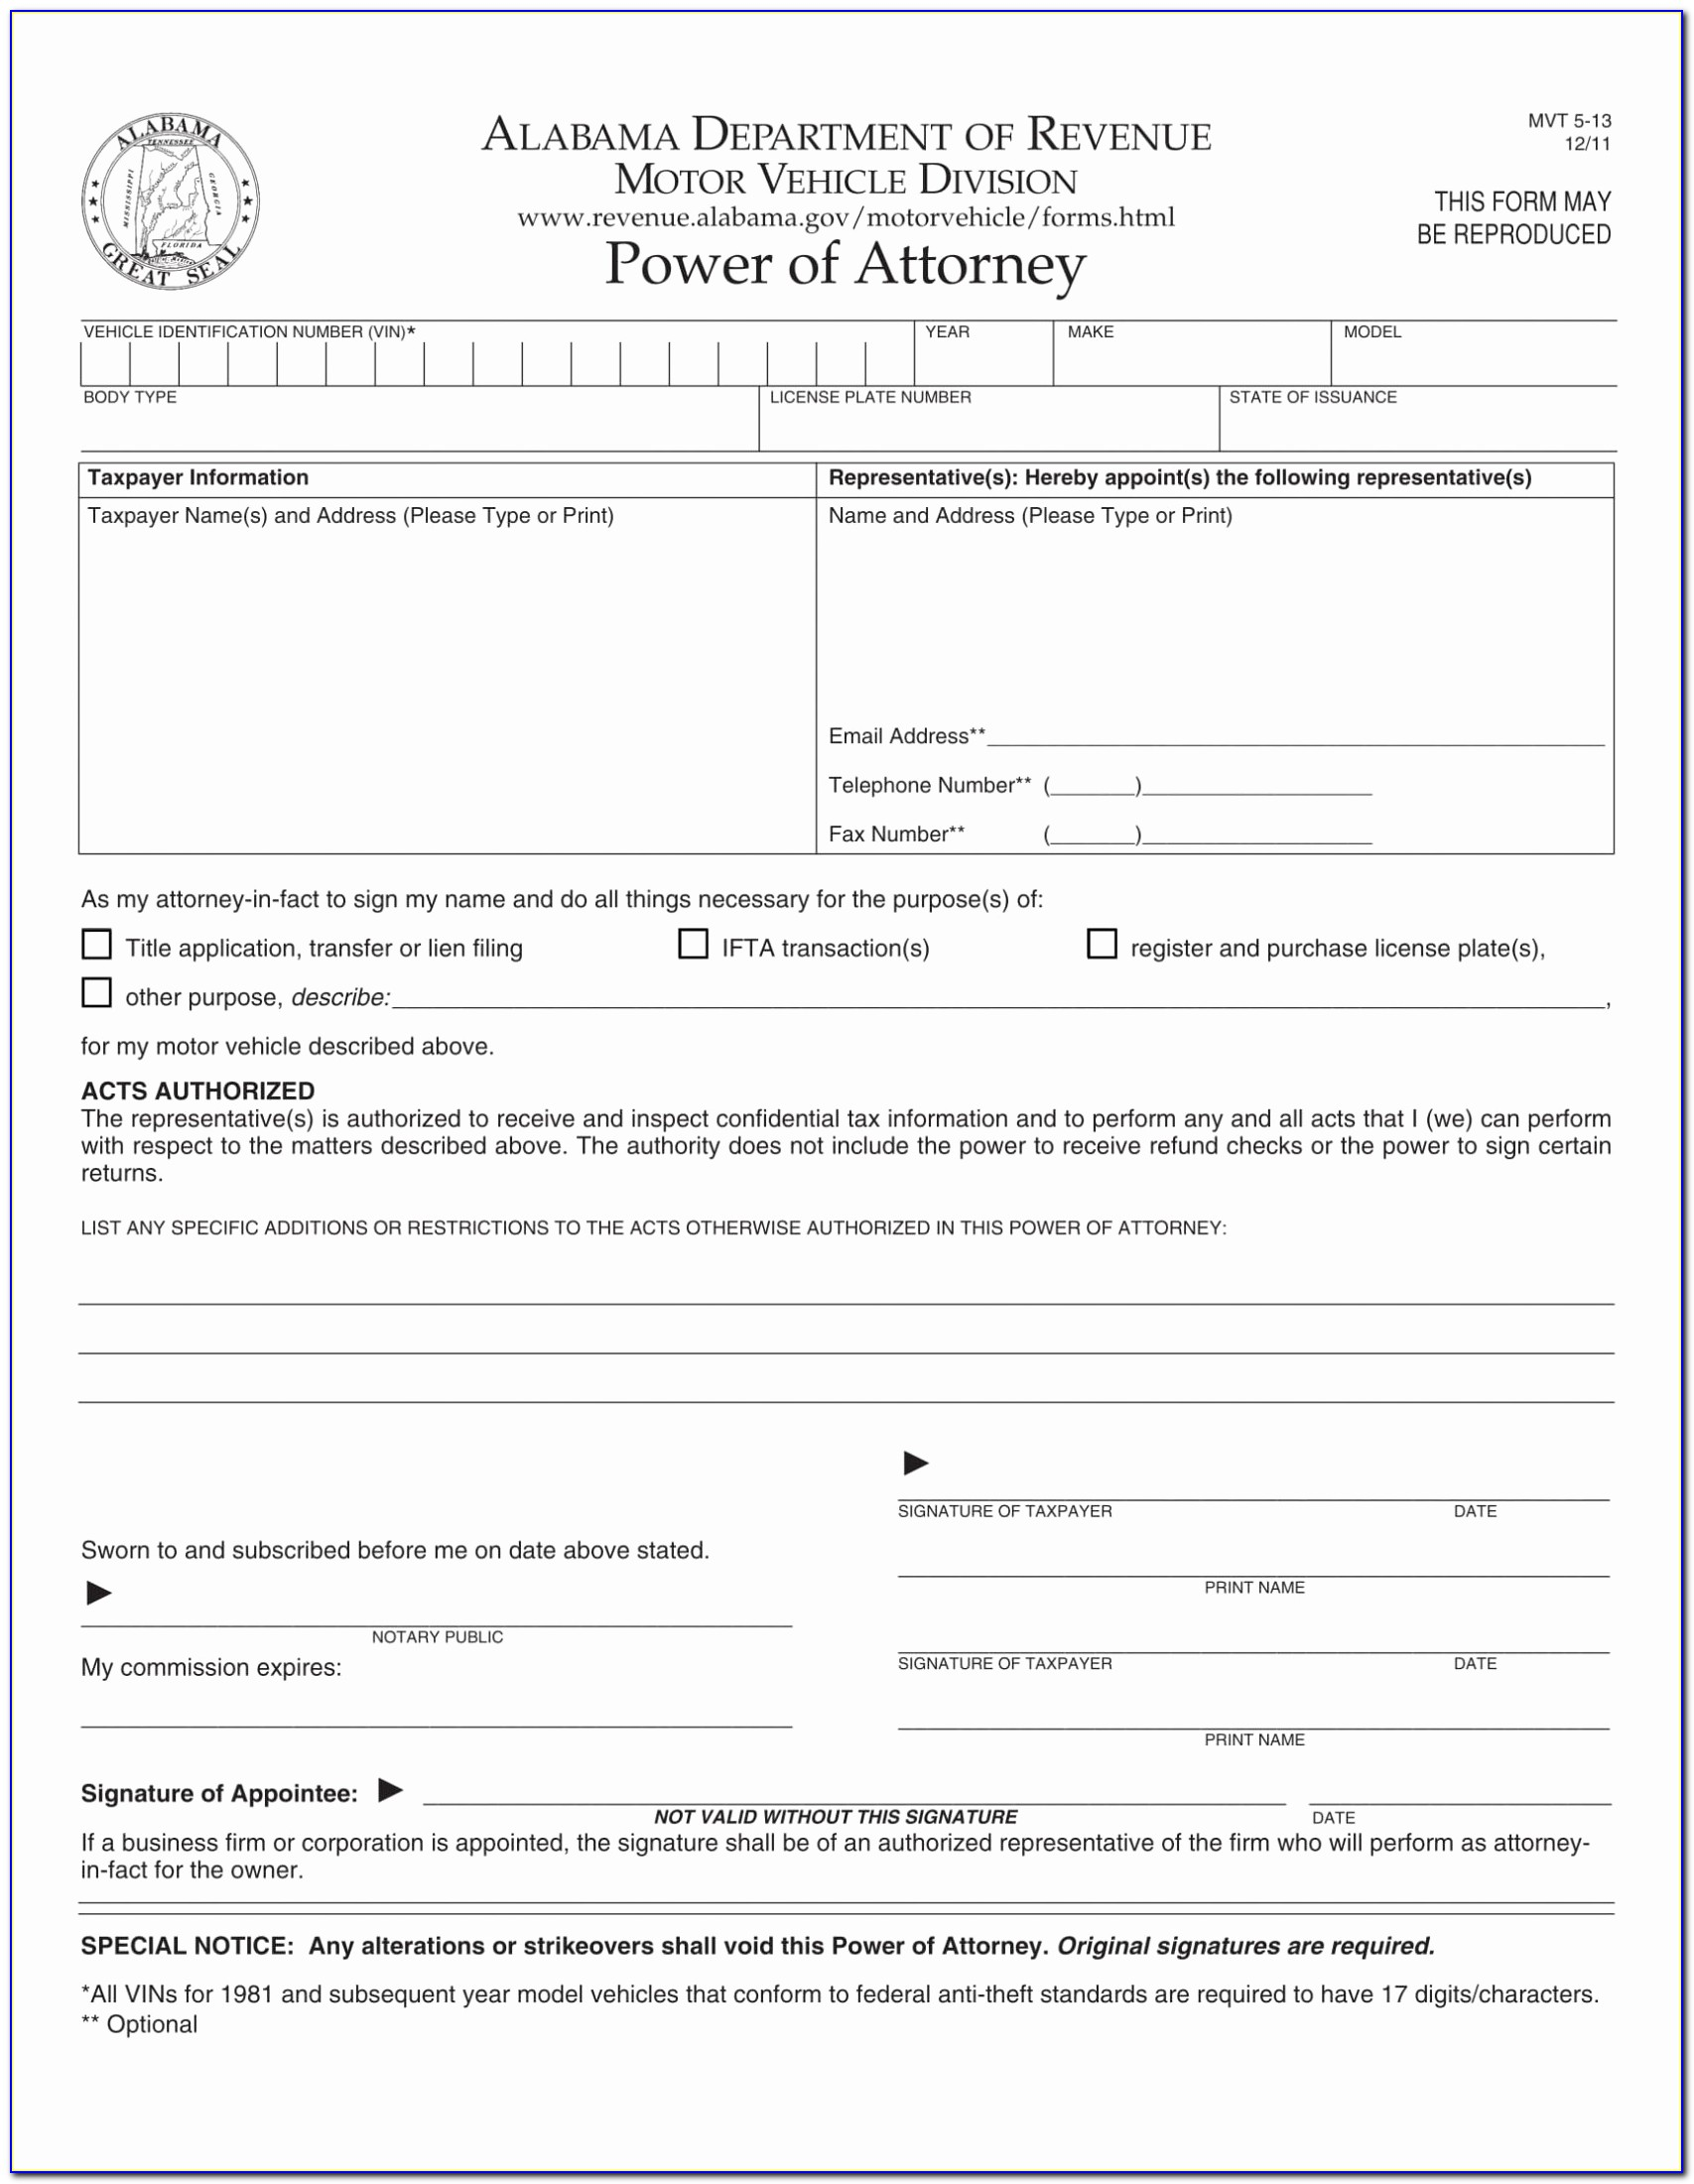 Florida Dmv Power Of Attorney Luxury Irrevocable Power Attorney Form Special Sample Dmv Nj